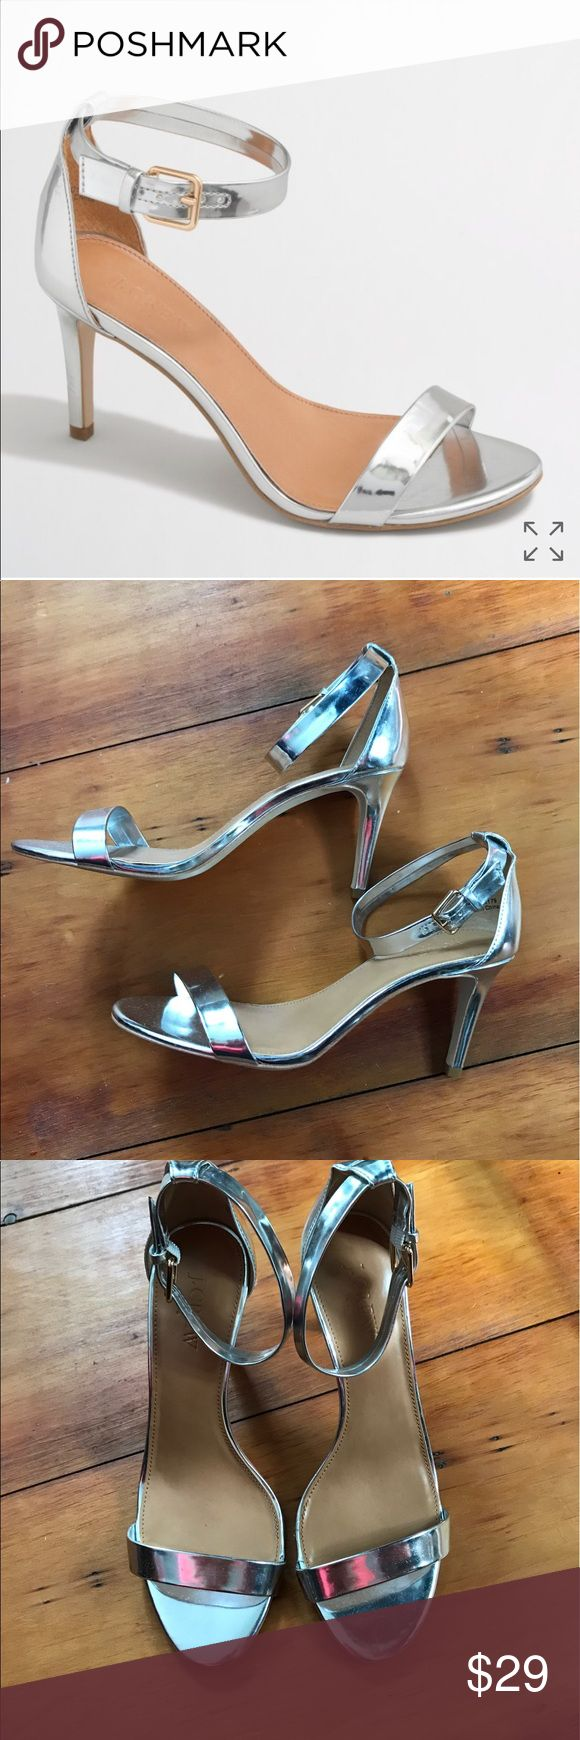 "J crew metallic high-heel sandal-silver 8.5 J. Crew factory metallic high heel sandal in silver. Women's size 8.5. Worn once (inside) box not included. Small scuffs on back of shoes. Please inspect photos carefully. 3 1/4"" heel, mirror metallic patent poly upper. Style c 1179 J. Crew Shoes Heels"